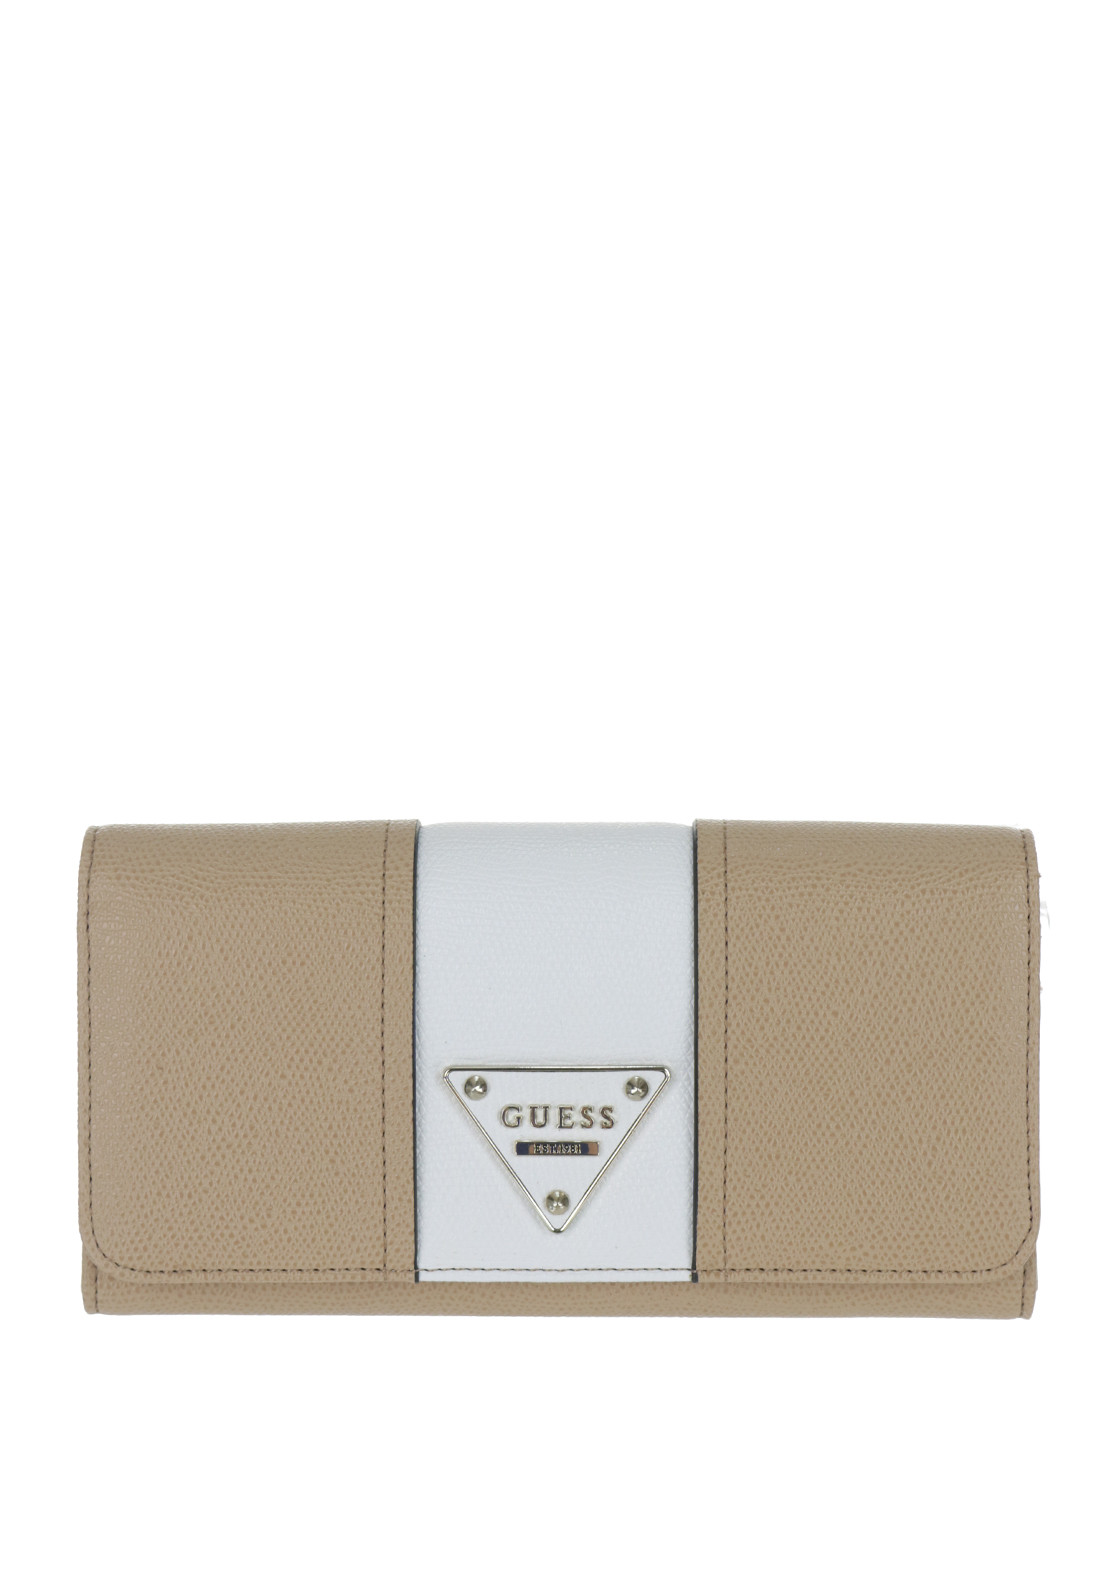 Guess Cooper Flap Large Purse, Tan